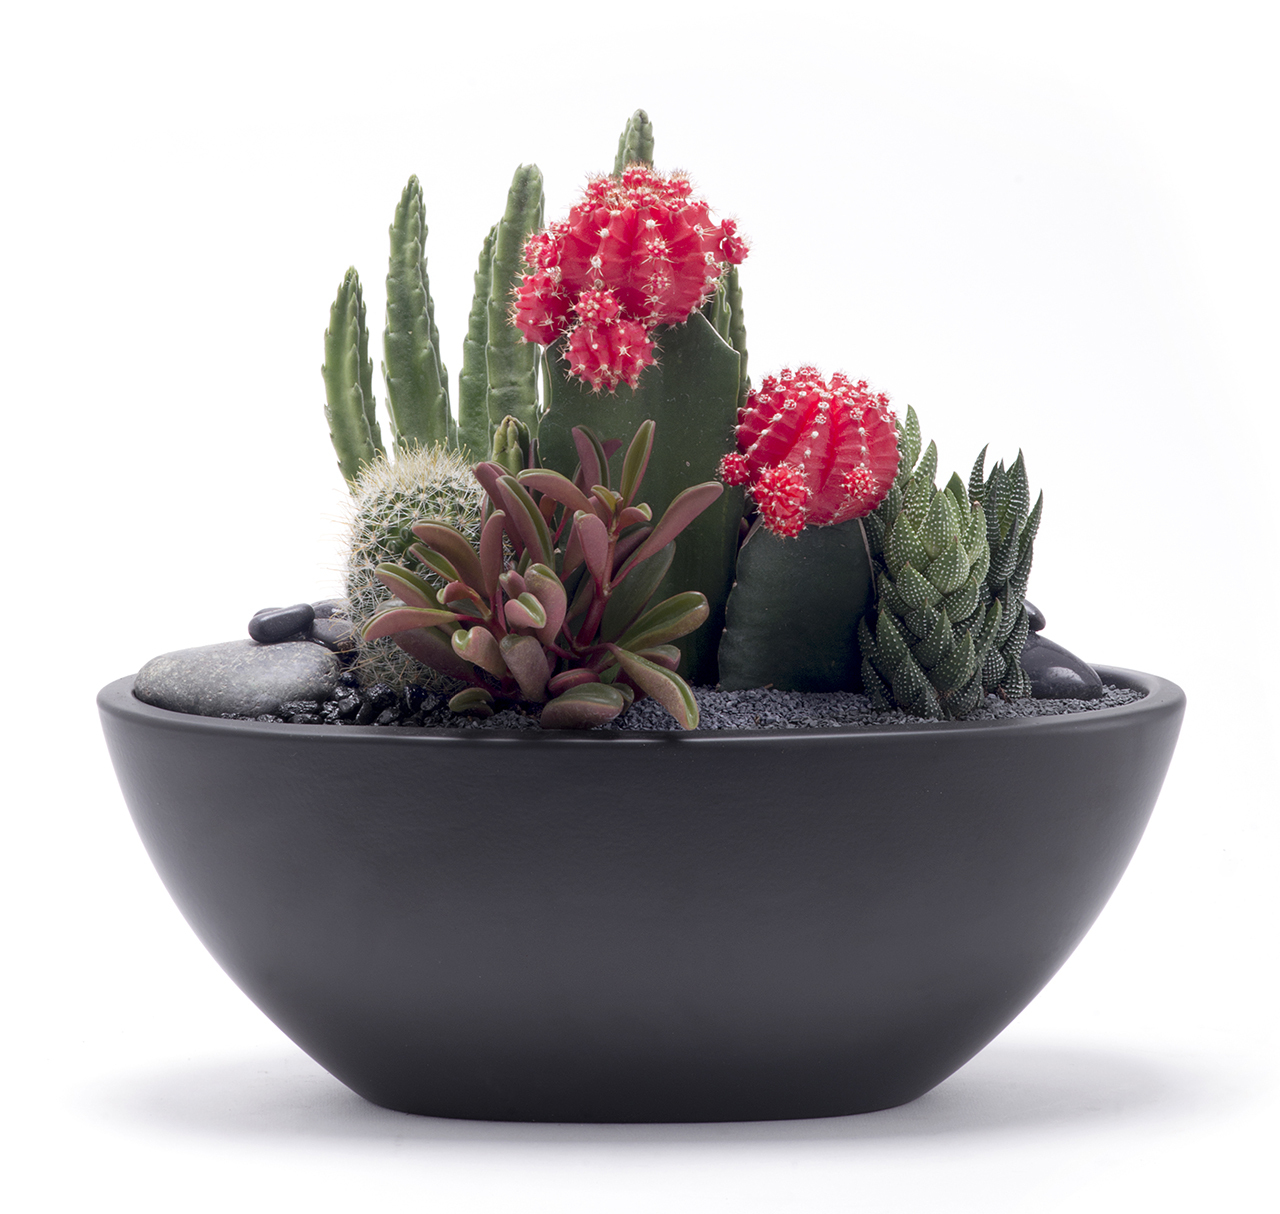 "Germany Boat Small Black - Garden (15"" H x 11.75"" W)"